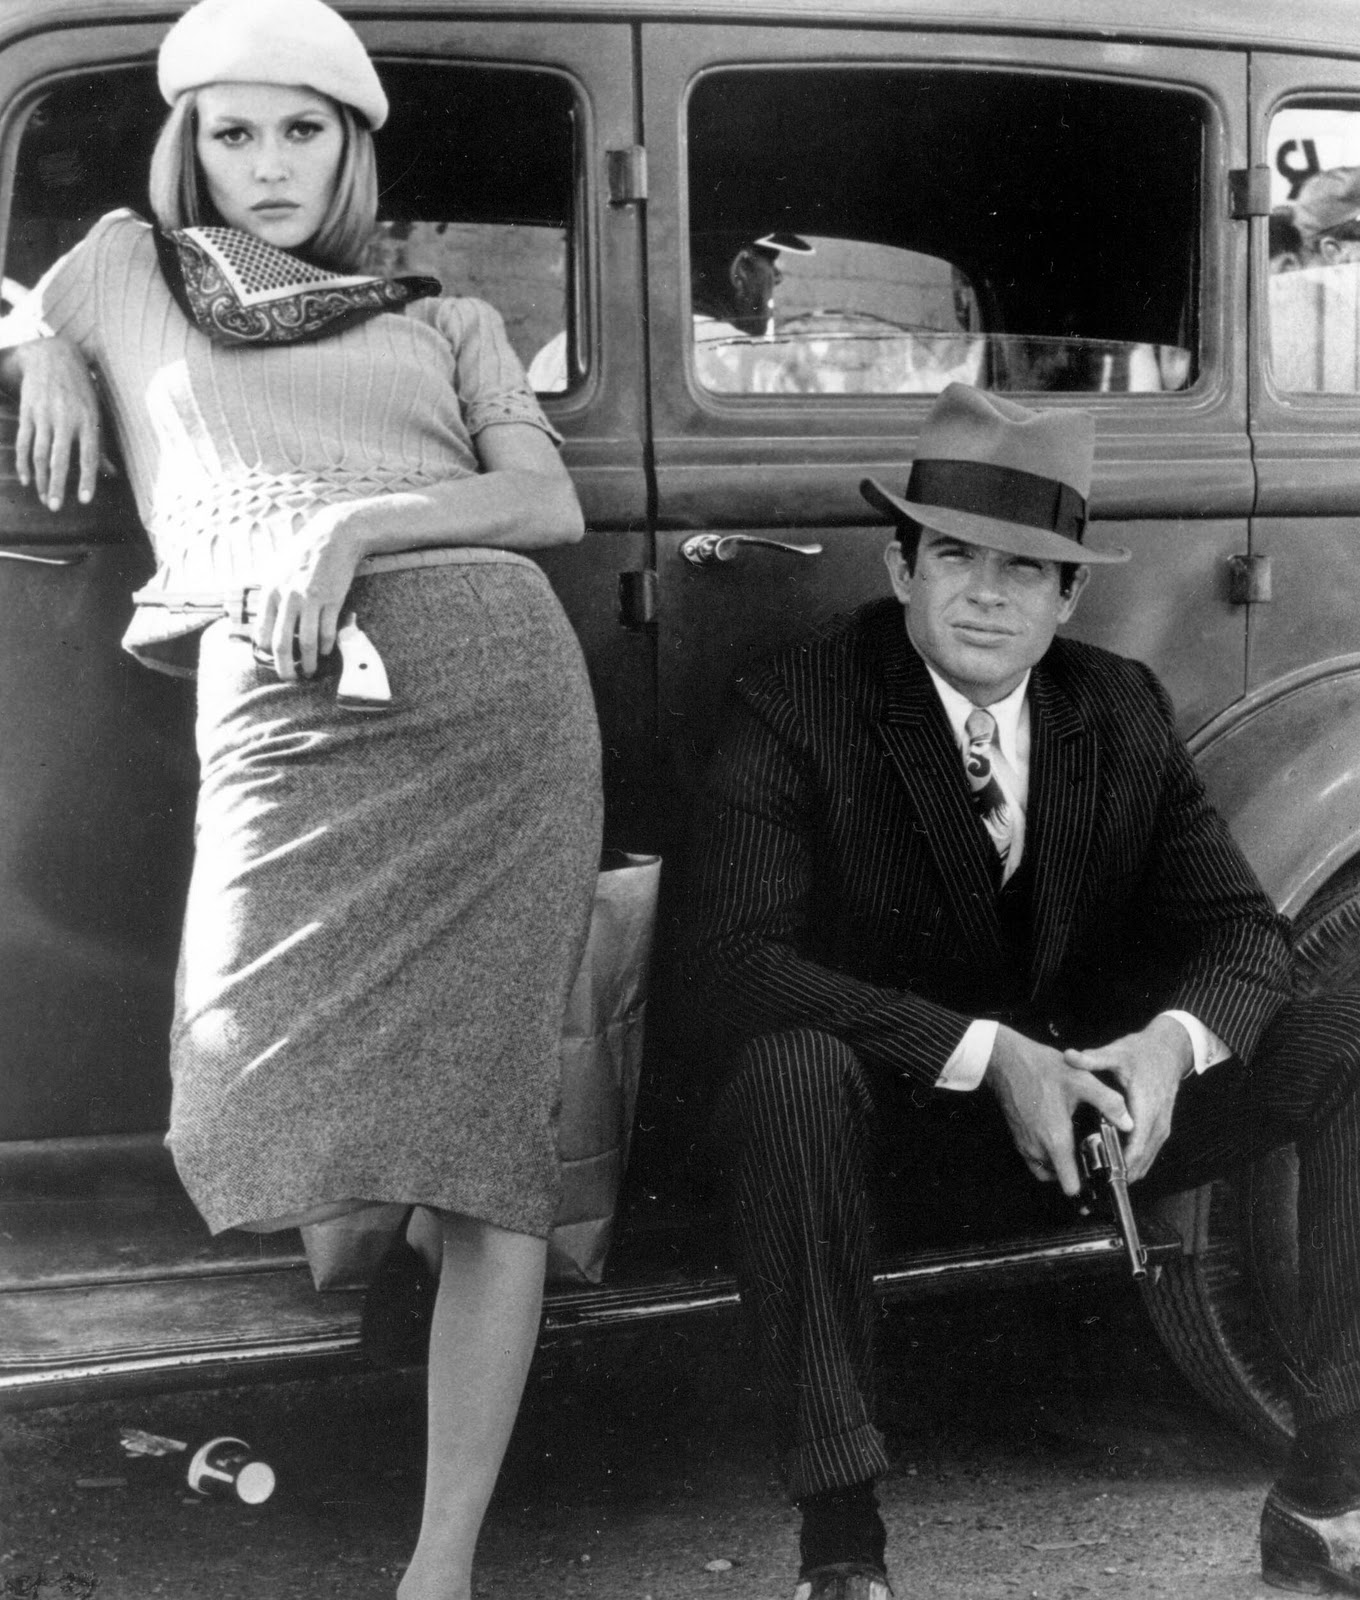 Clyde Beatty Wallpapers Pin Bonnie And Clyde Classic Movies Wallpaper Fanpop on